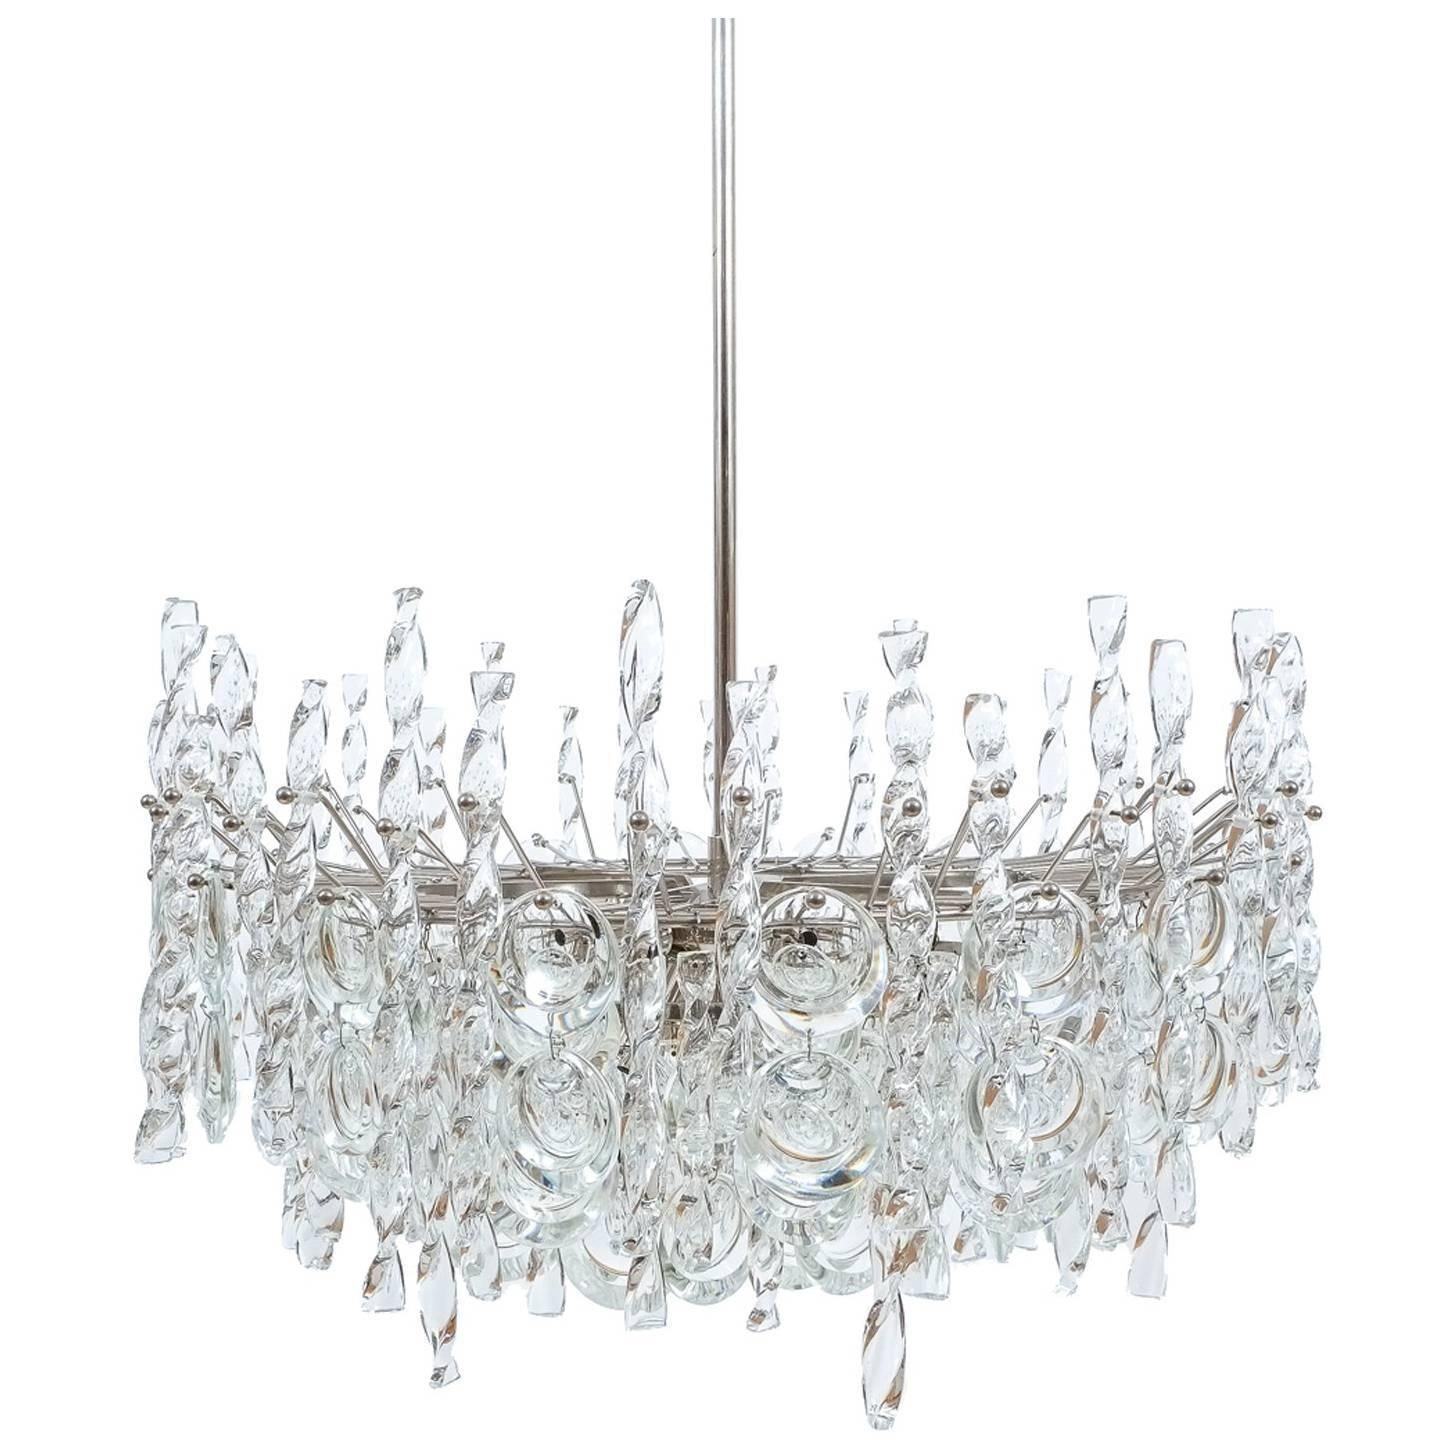 Impressive Tendril Ribbon Glass Chandelier Lamp by Palwa, 1960